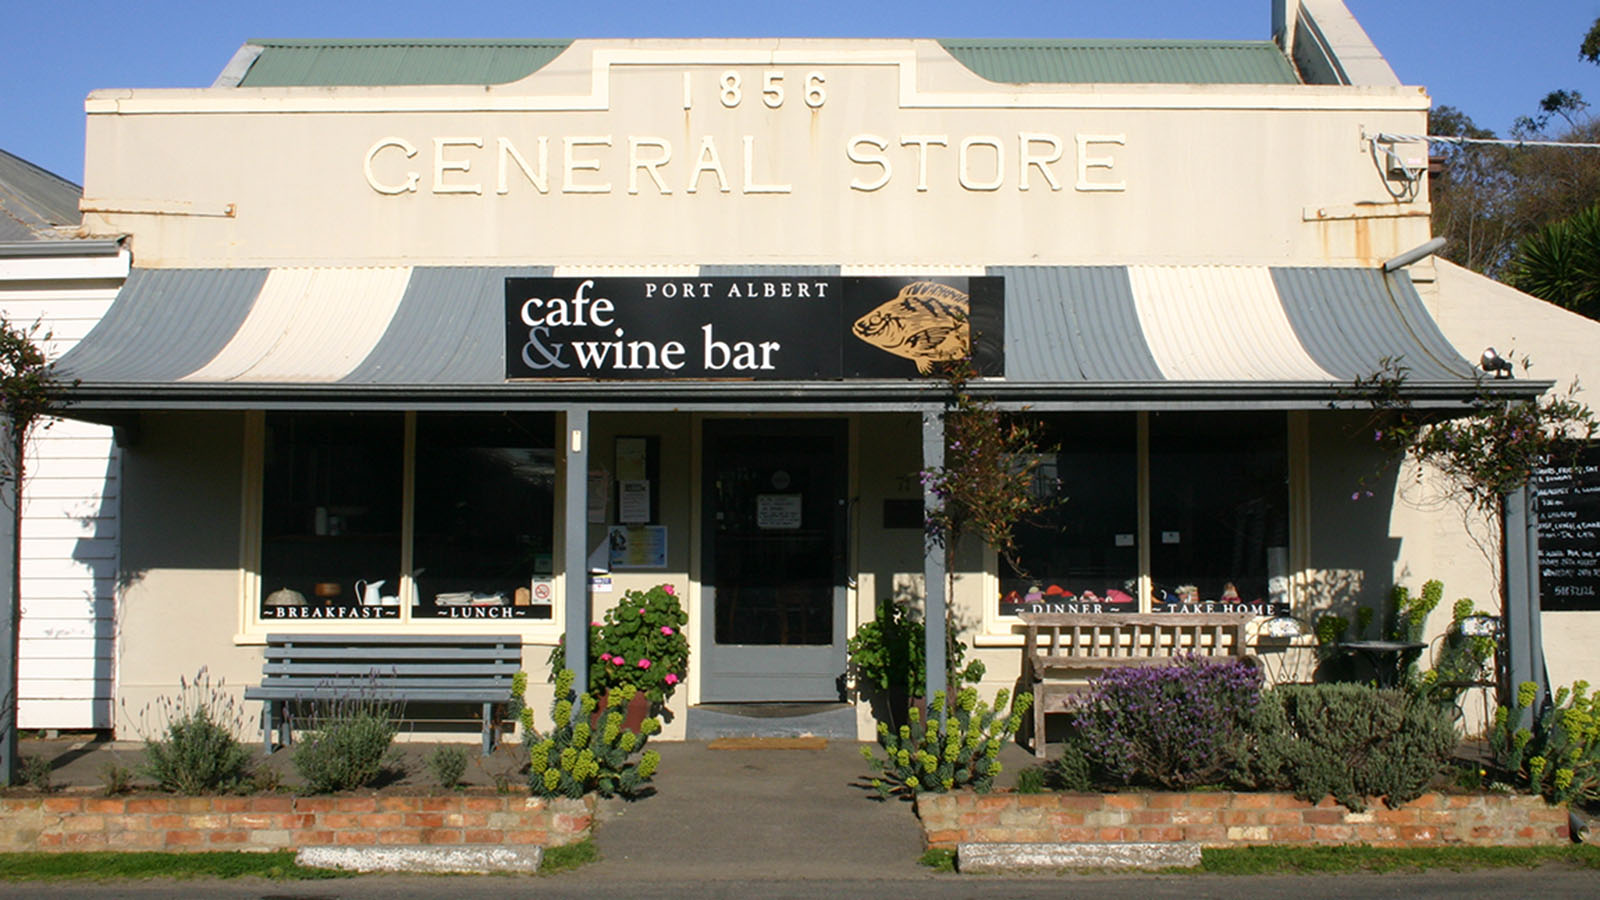 Port Albert Cafe & Wine Bar, Gippsland, Victoria, Australia